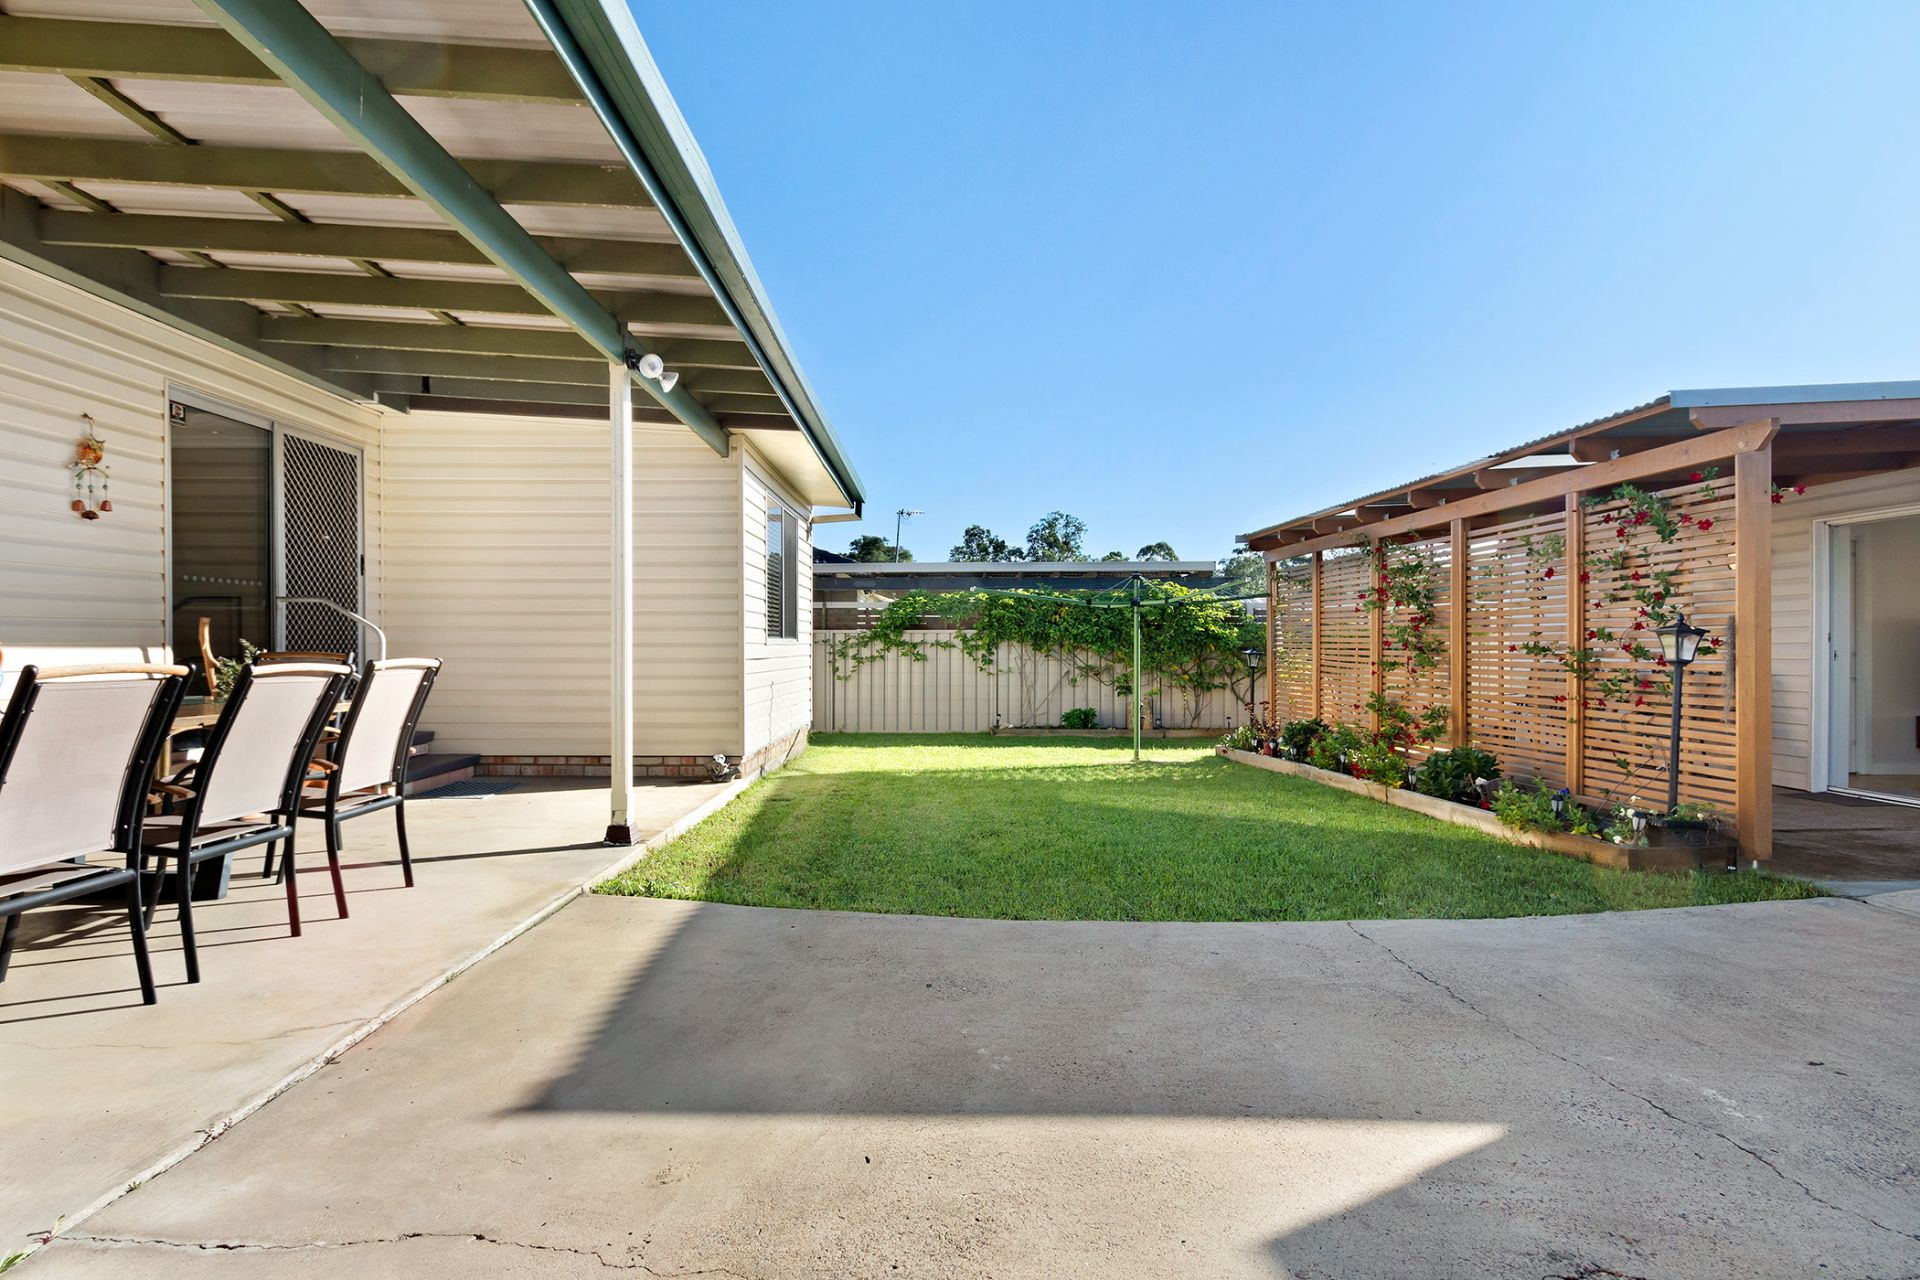 Flexibility reigns in this dual-occupancy property